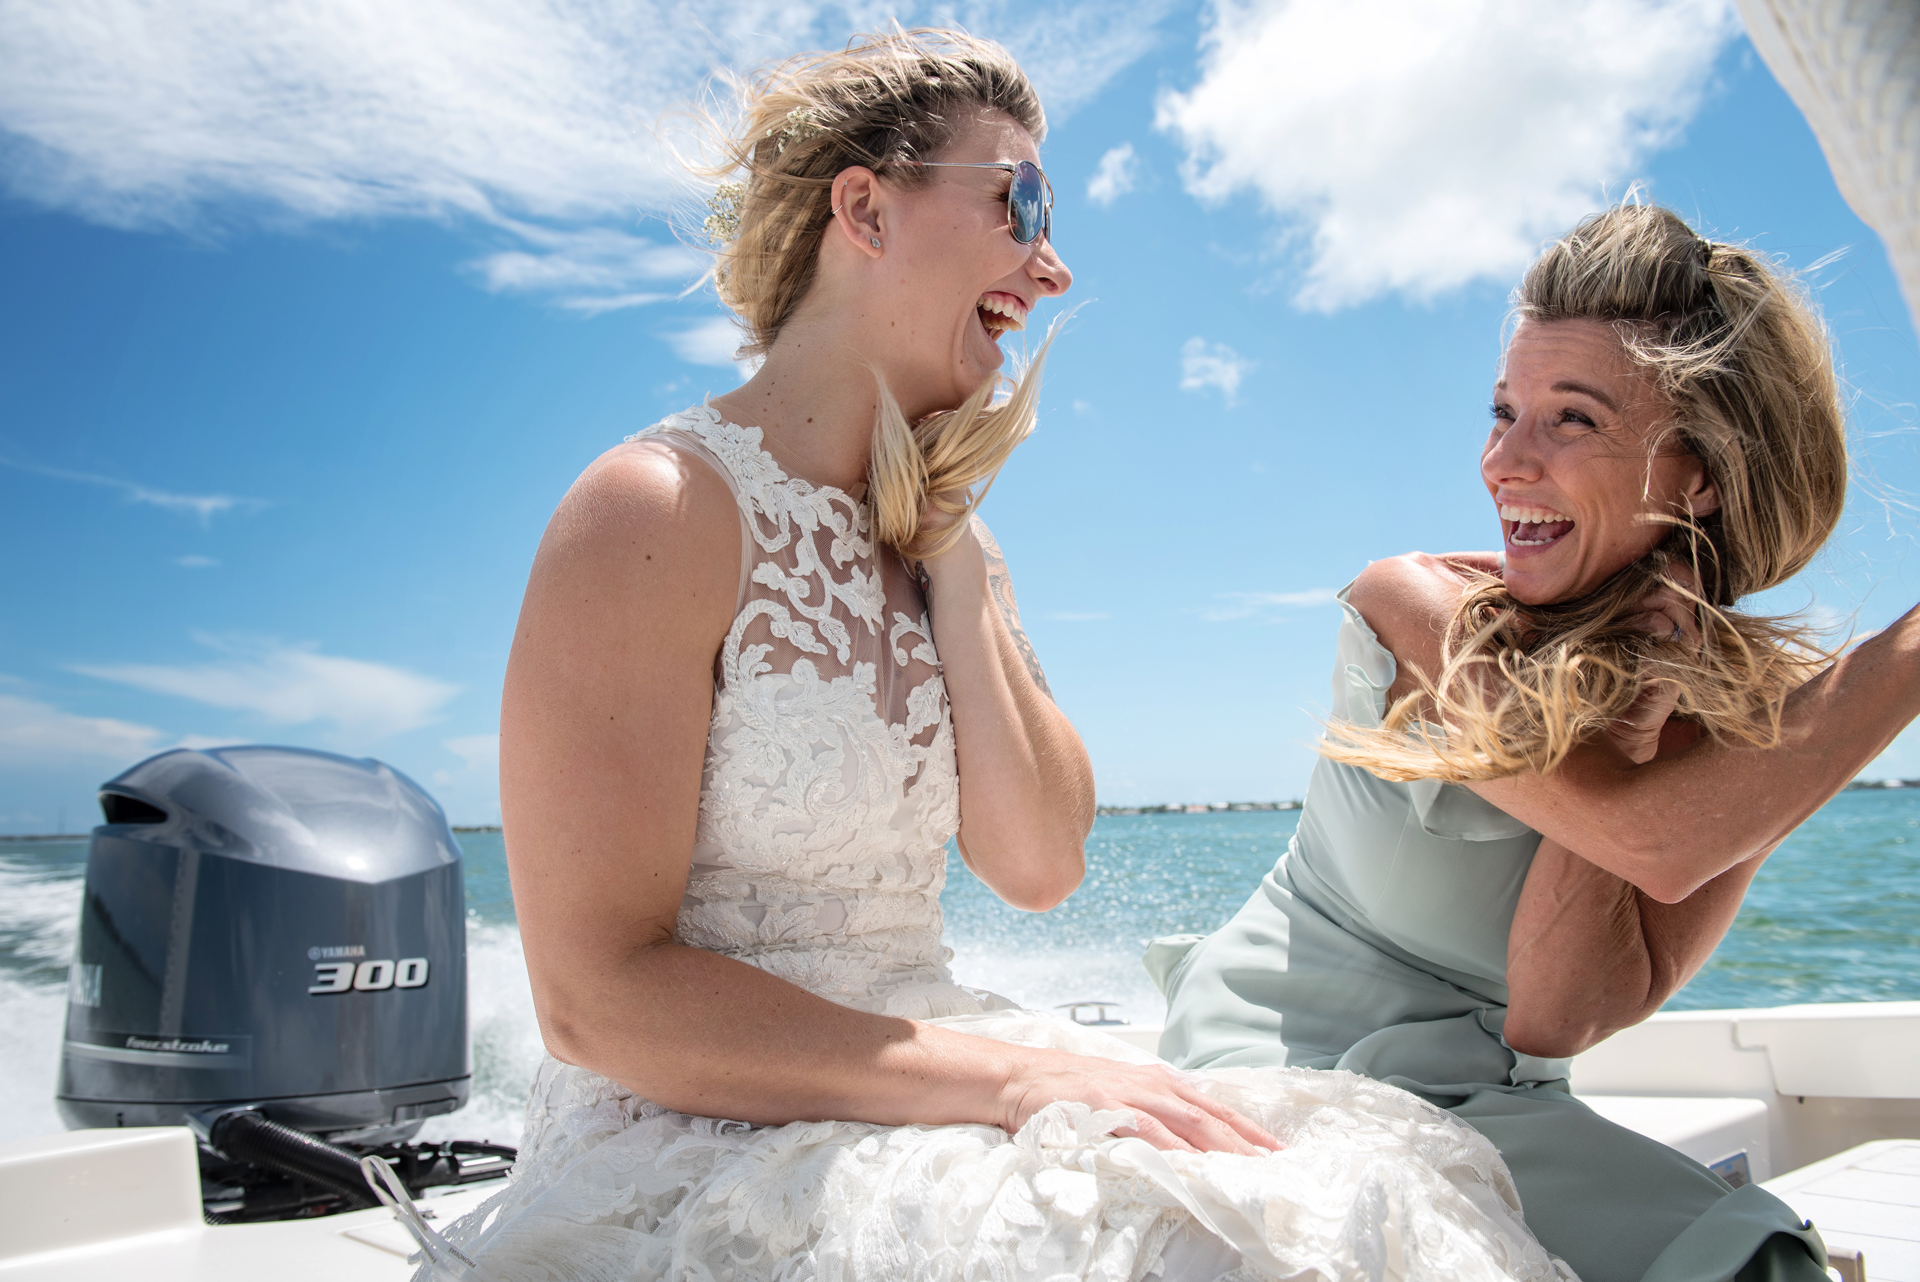 Elopement Photography for Florida Keys | The bride and MOB are having a blast on their boat ride out to the ceremony location